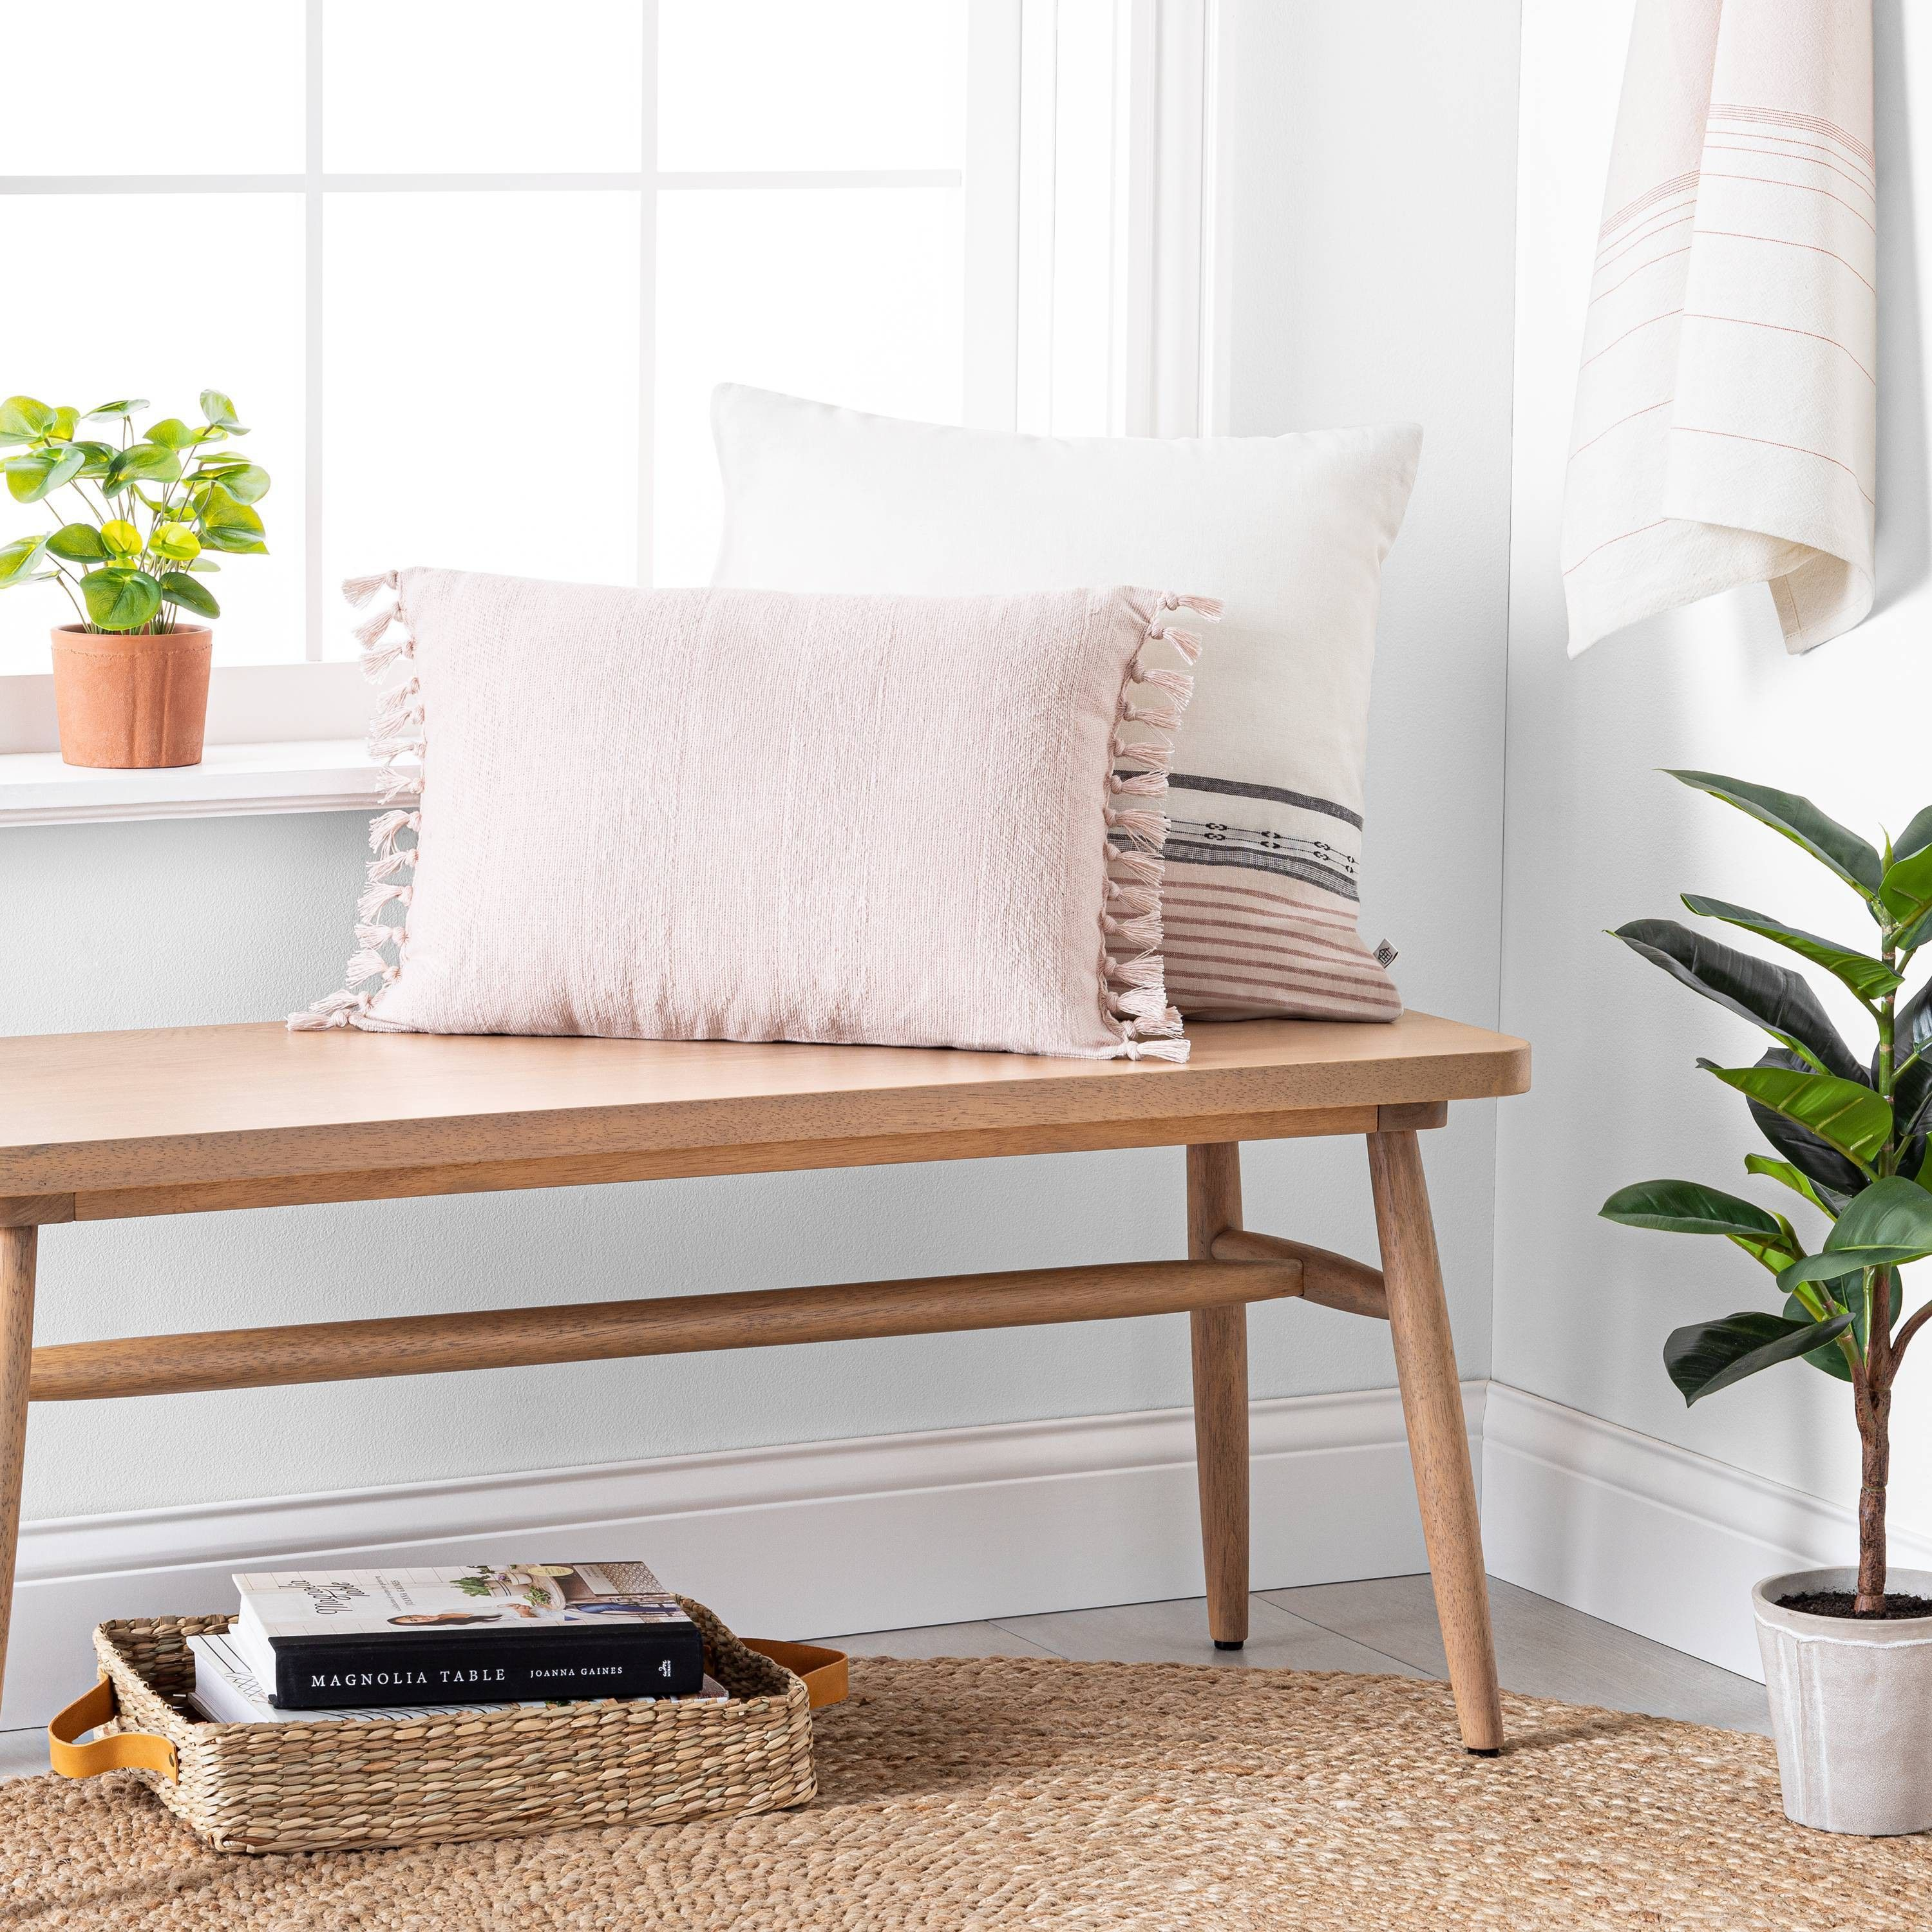 Chip And Joanna Gaines New Furniture Line Launches At Target Next Week